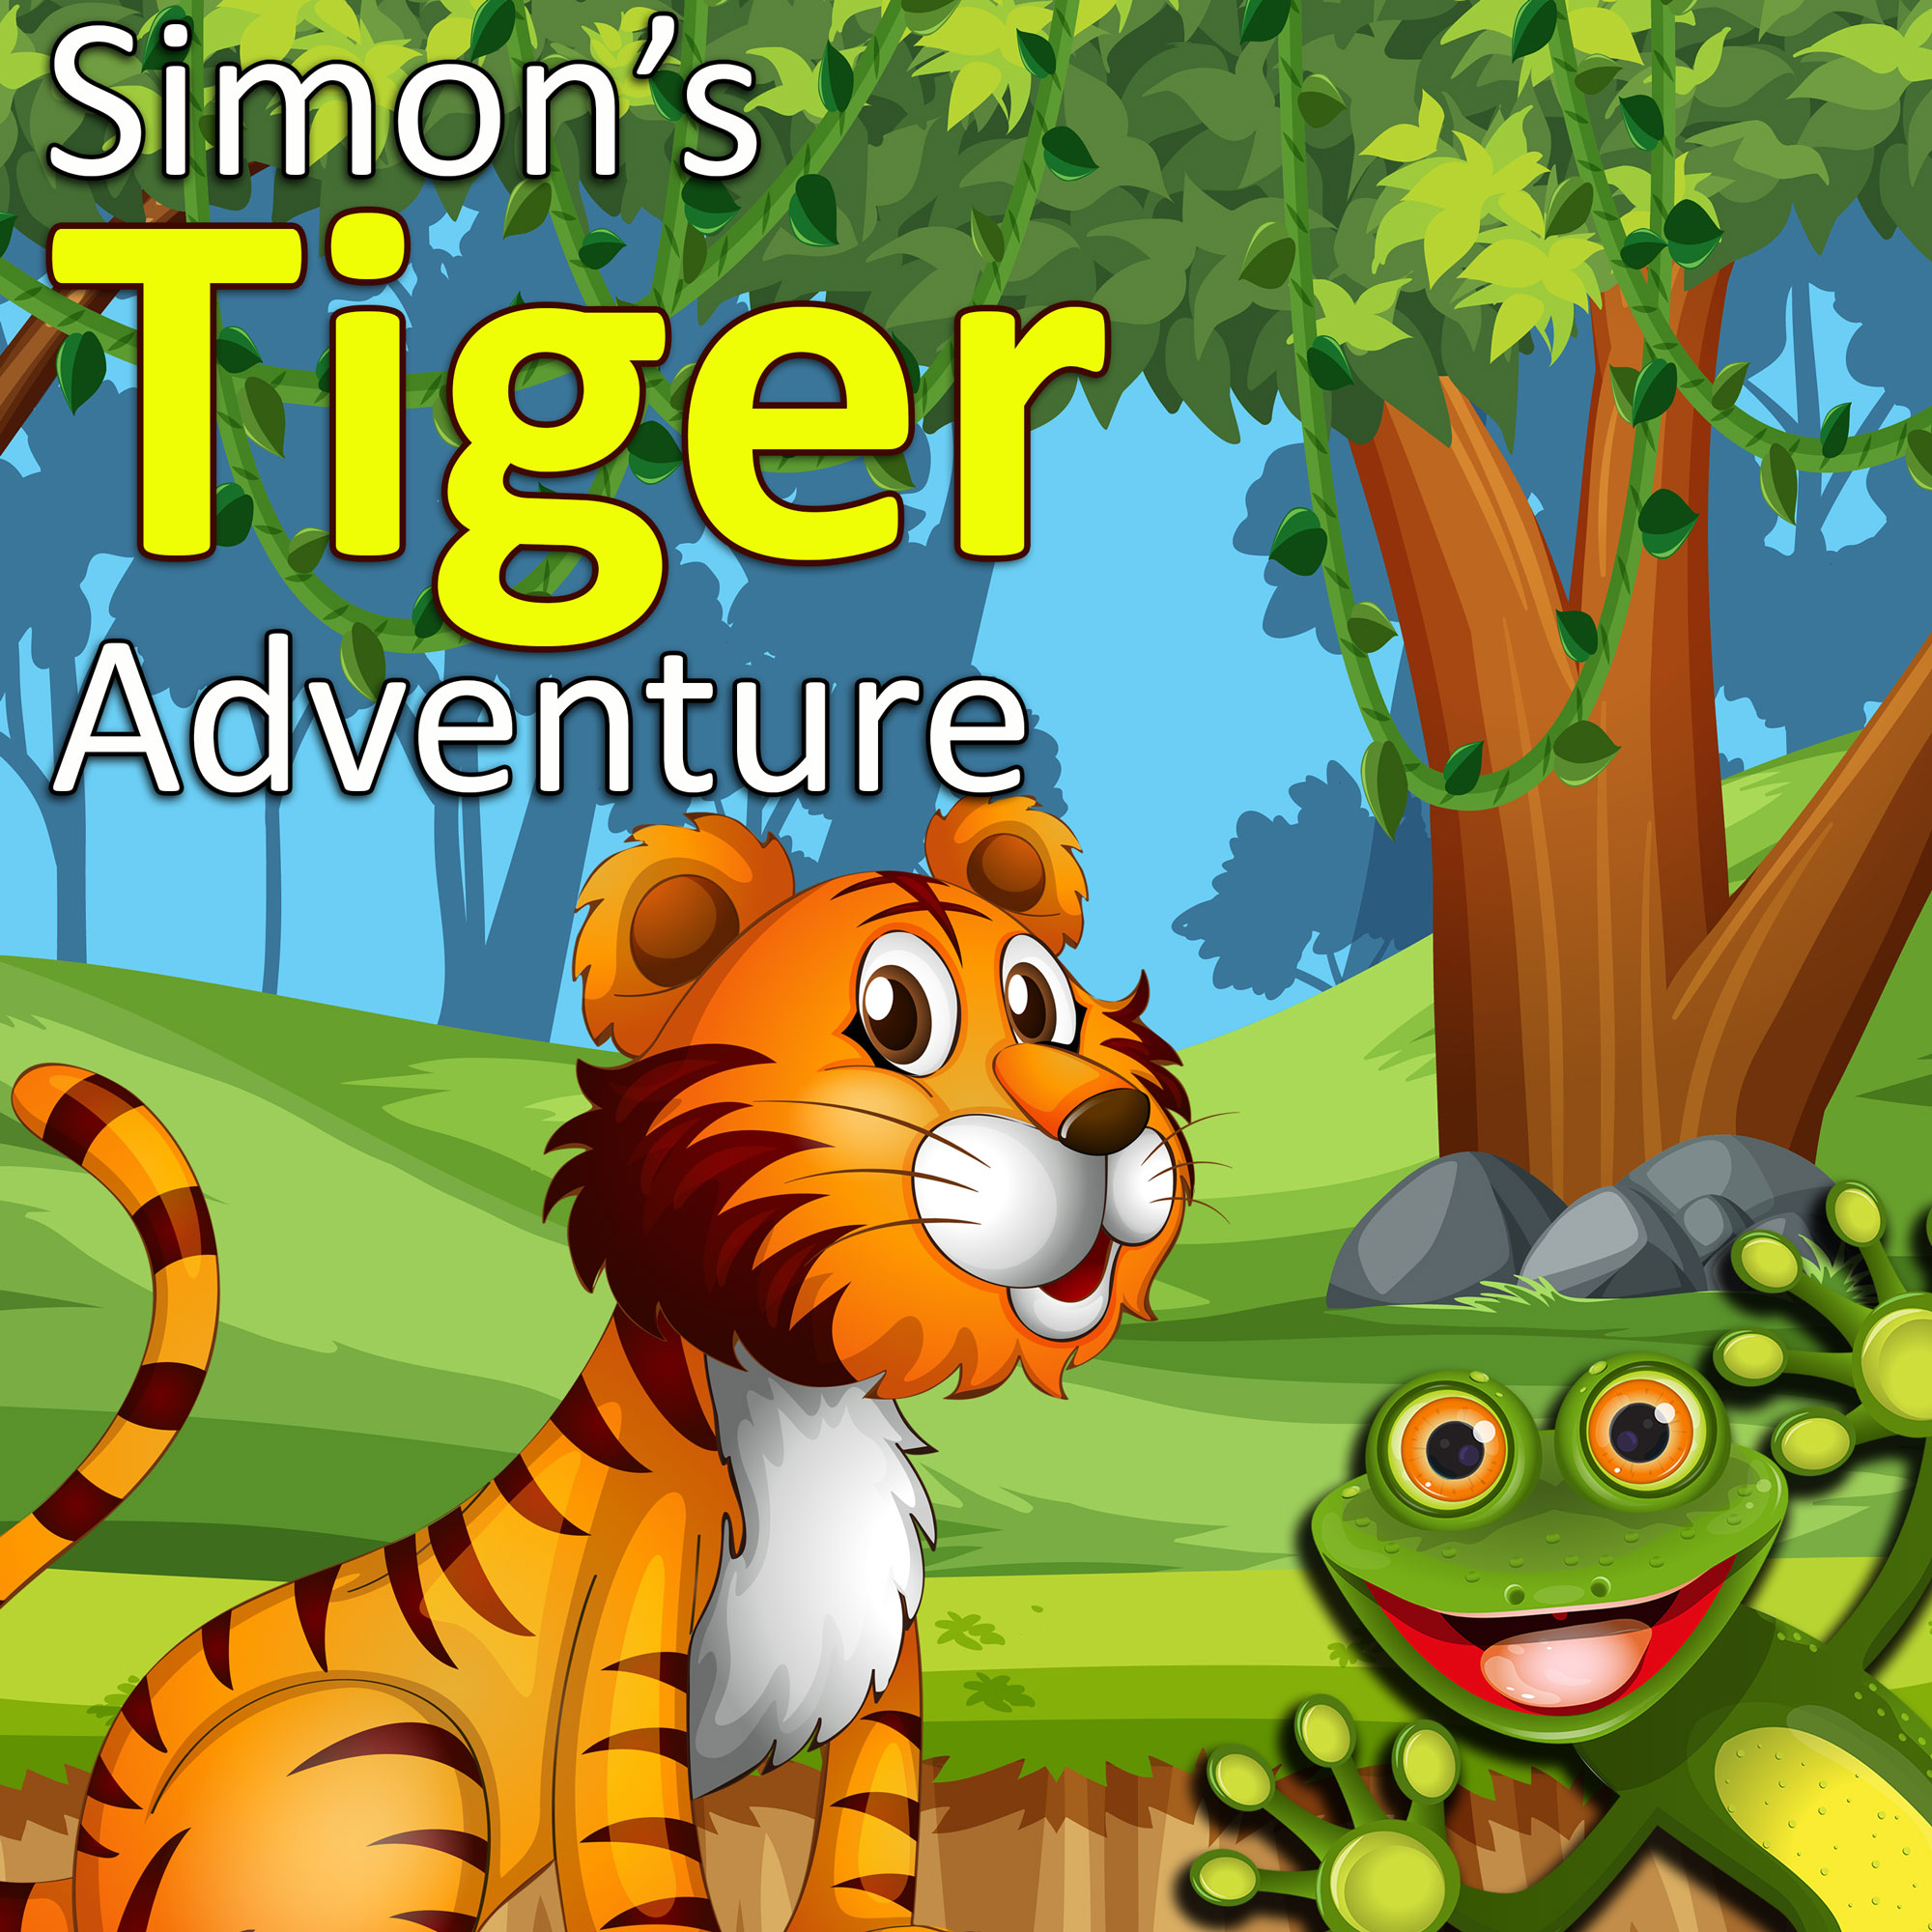 Simon's Tiger Adventure